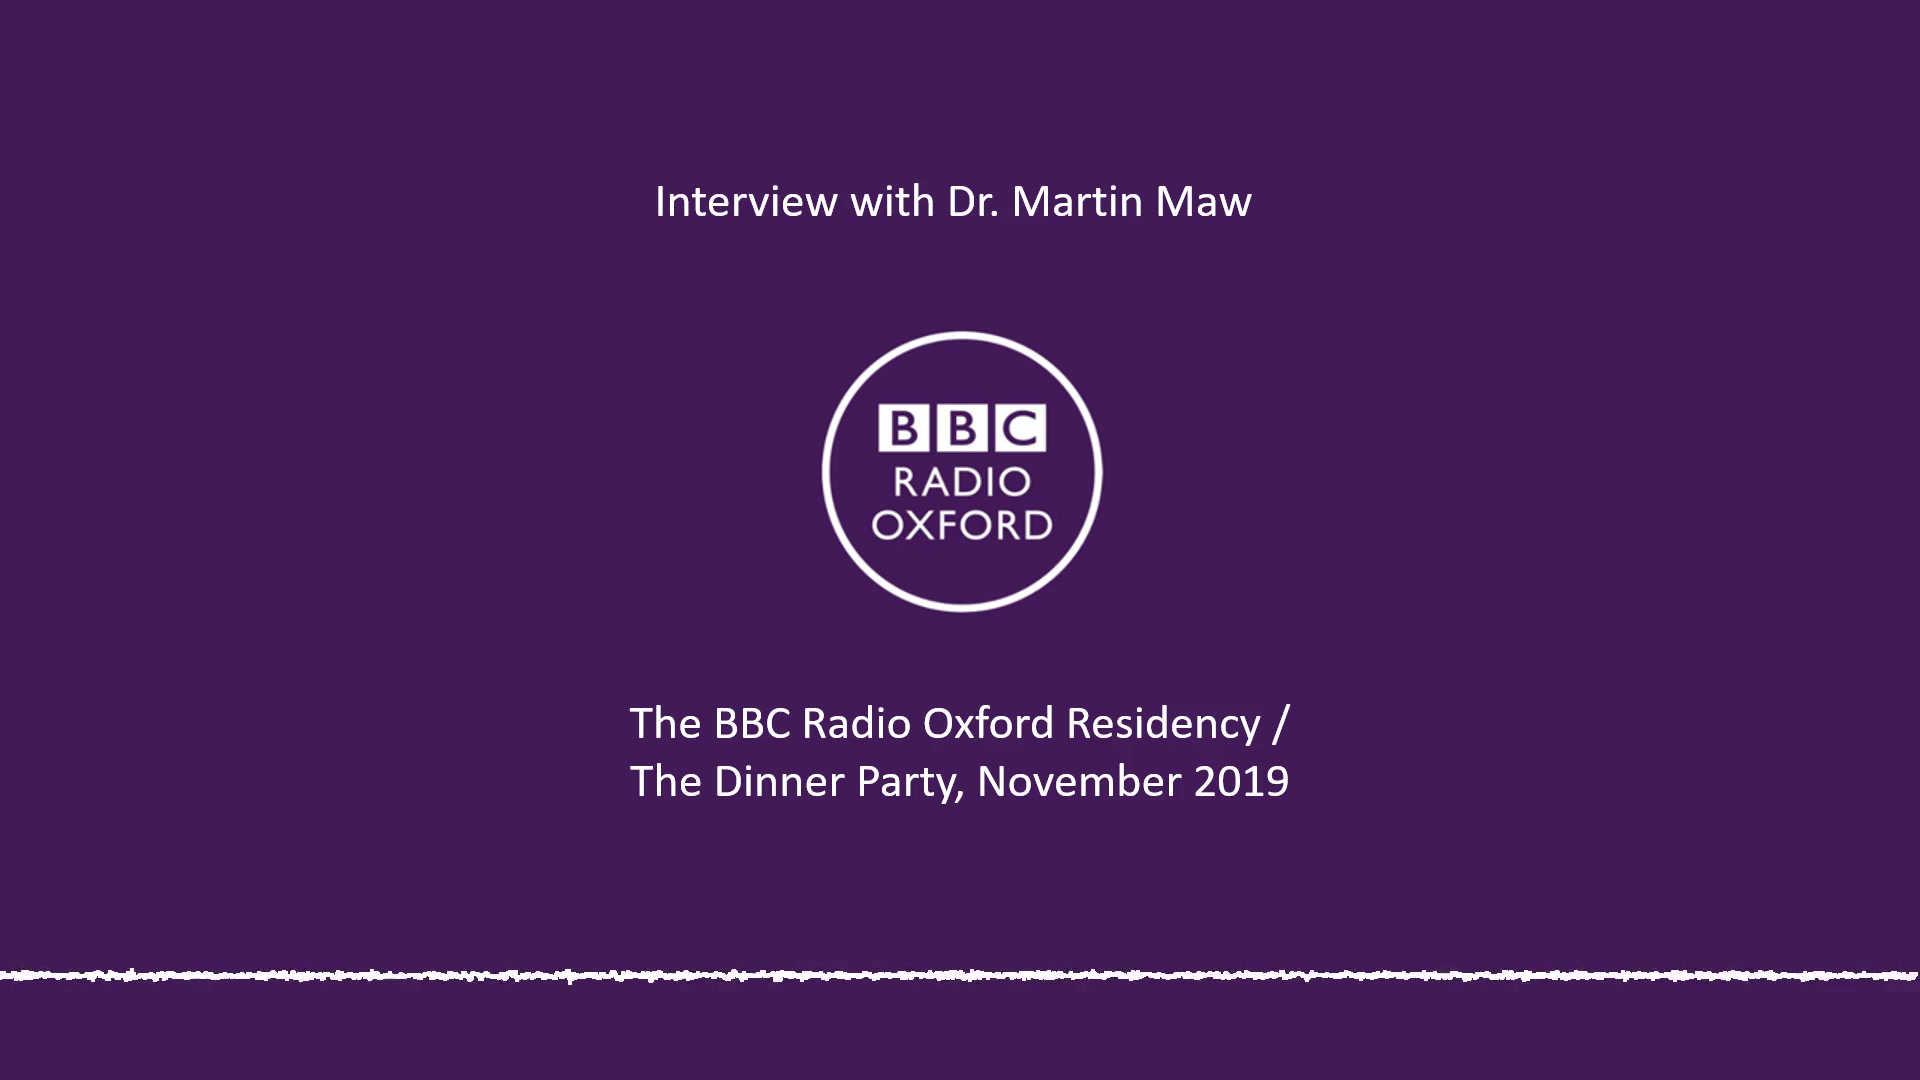 Interview with Dr. Martin Maw